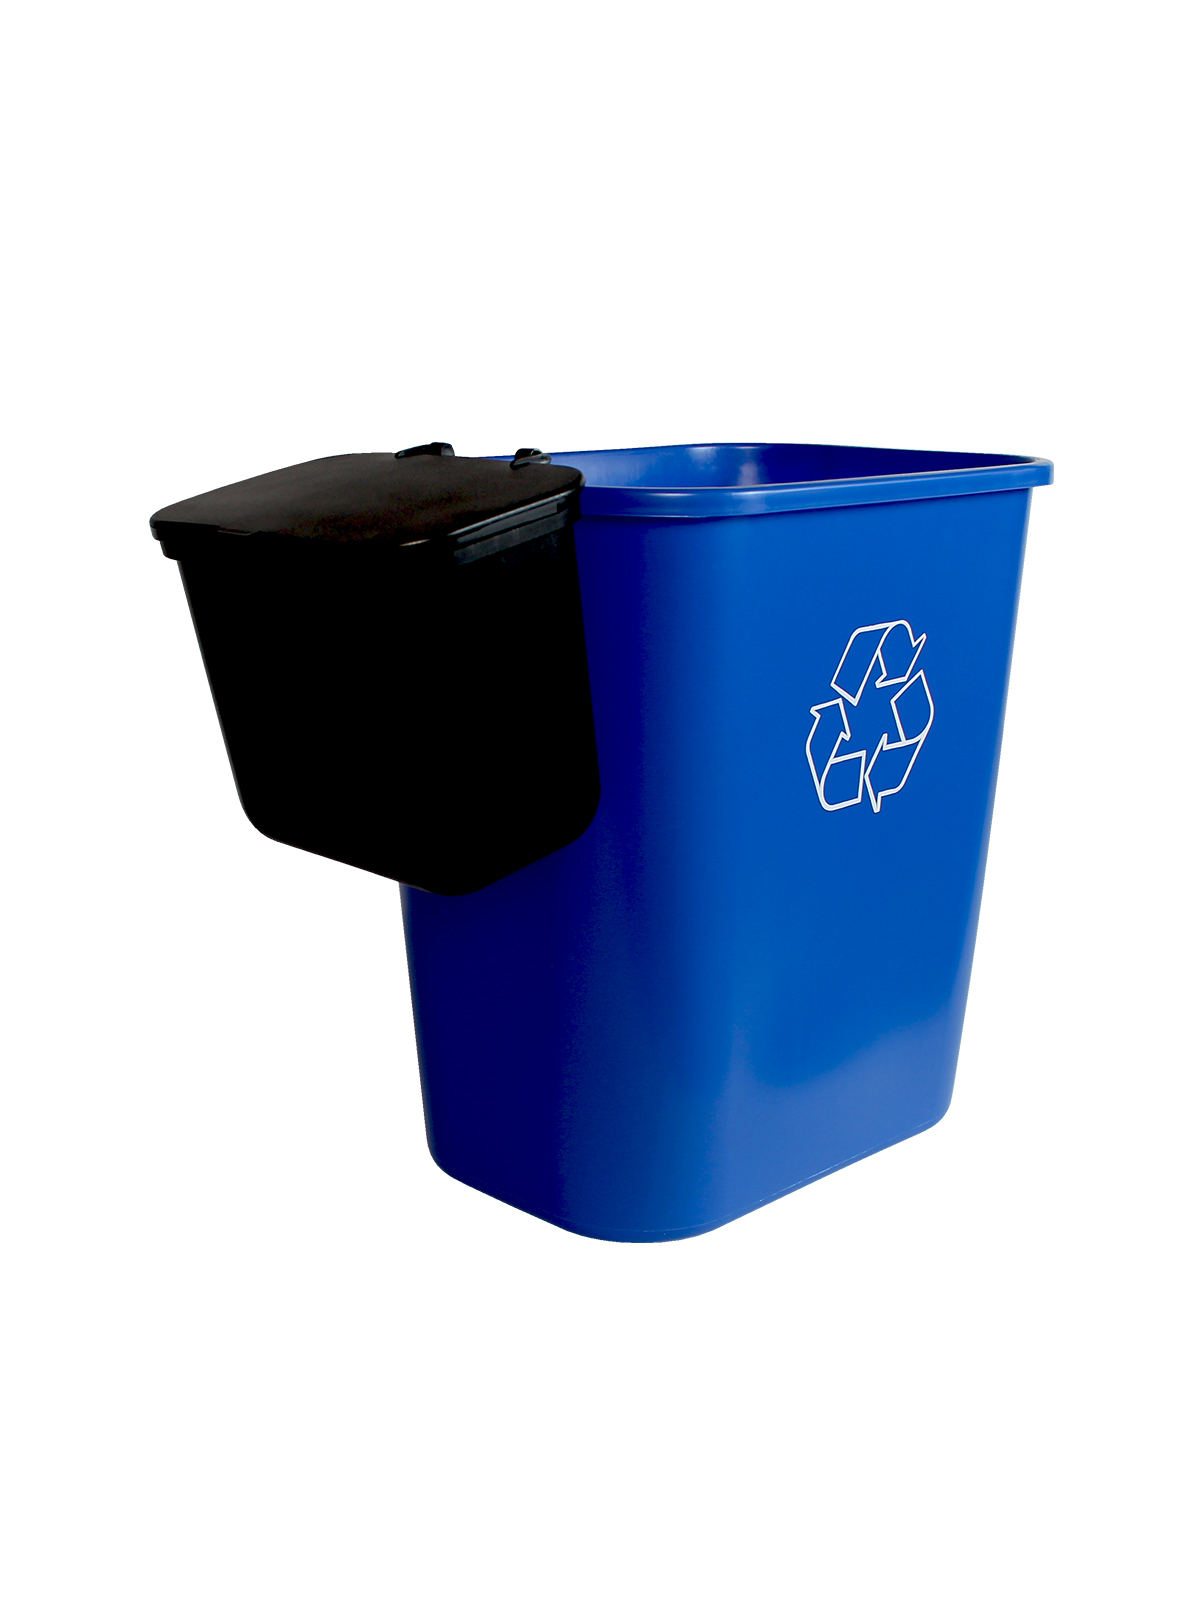 Recycling & Waste Baskets